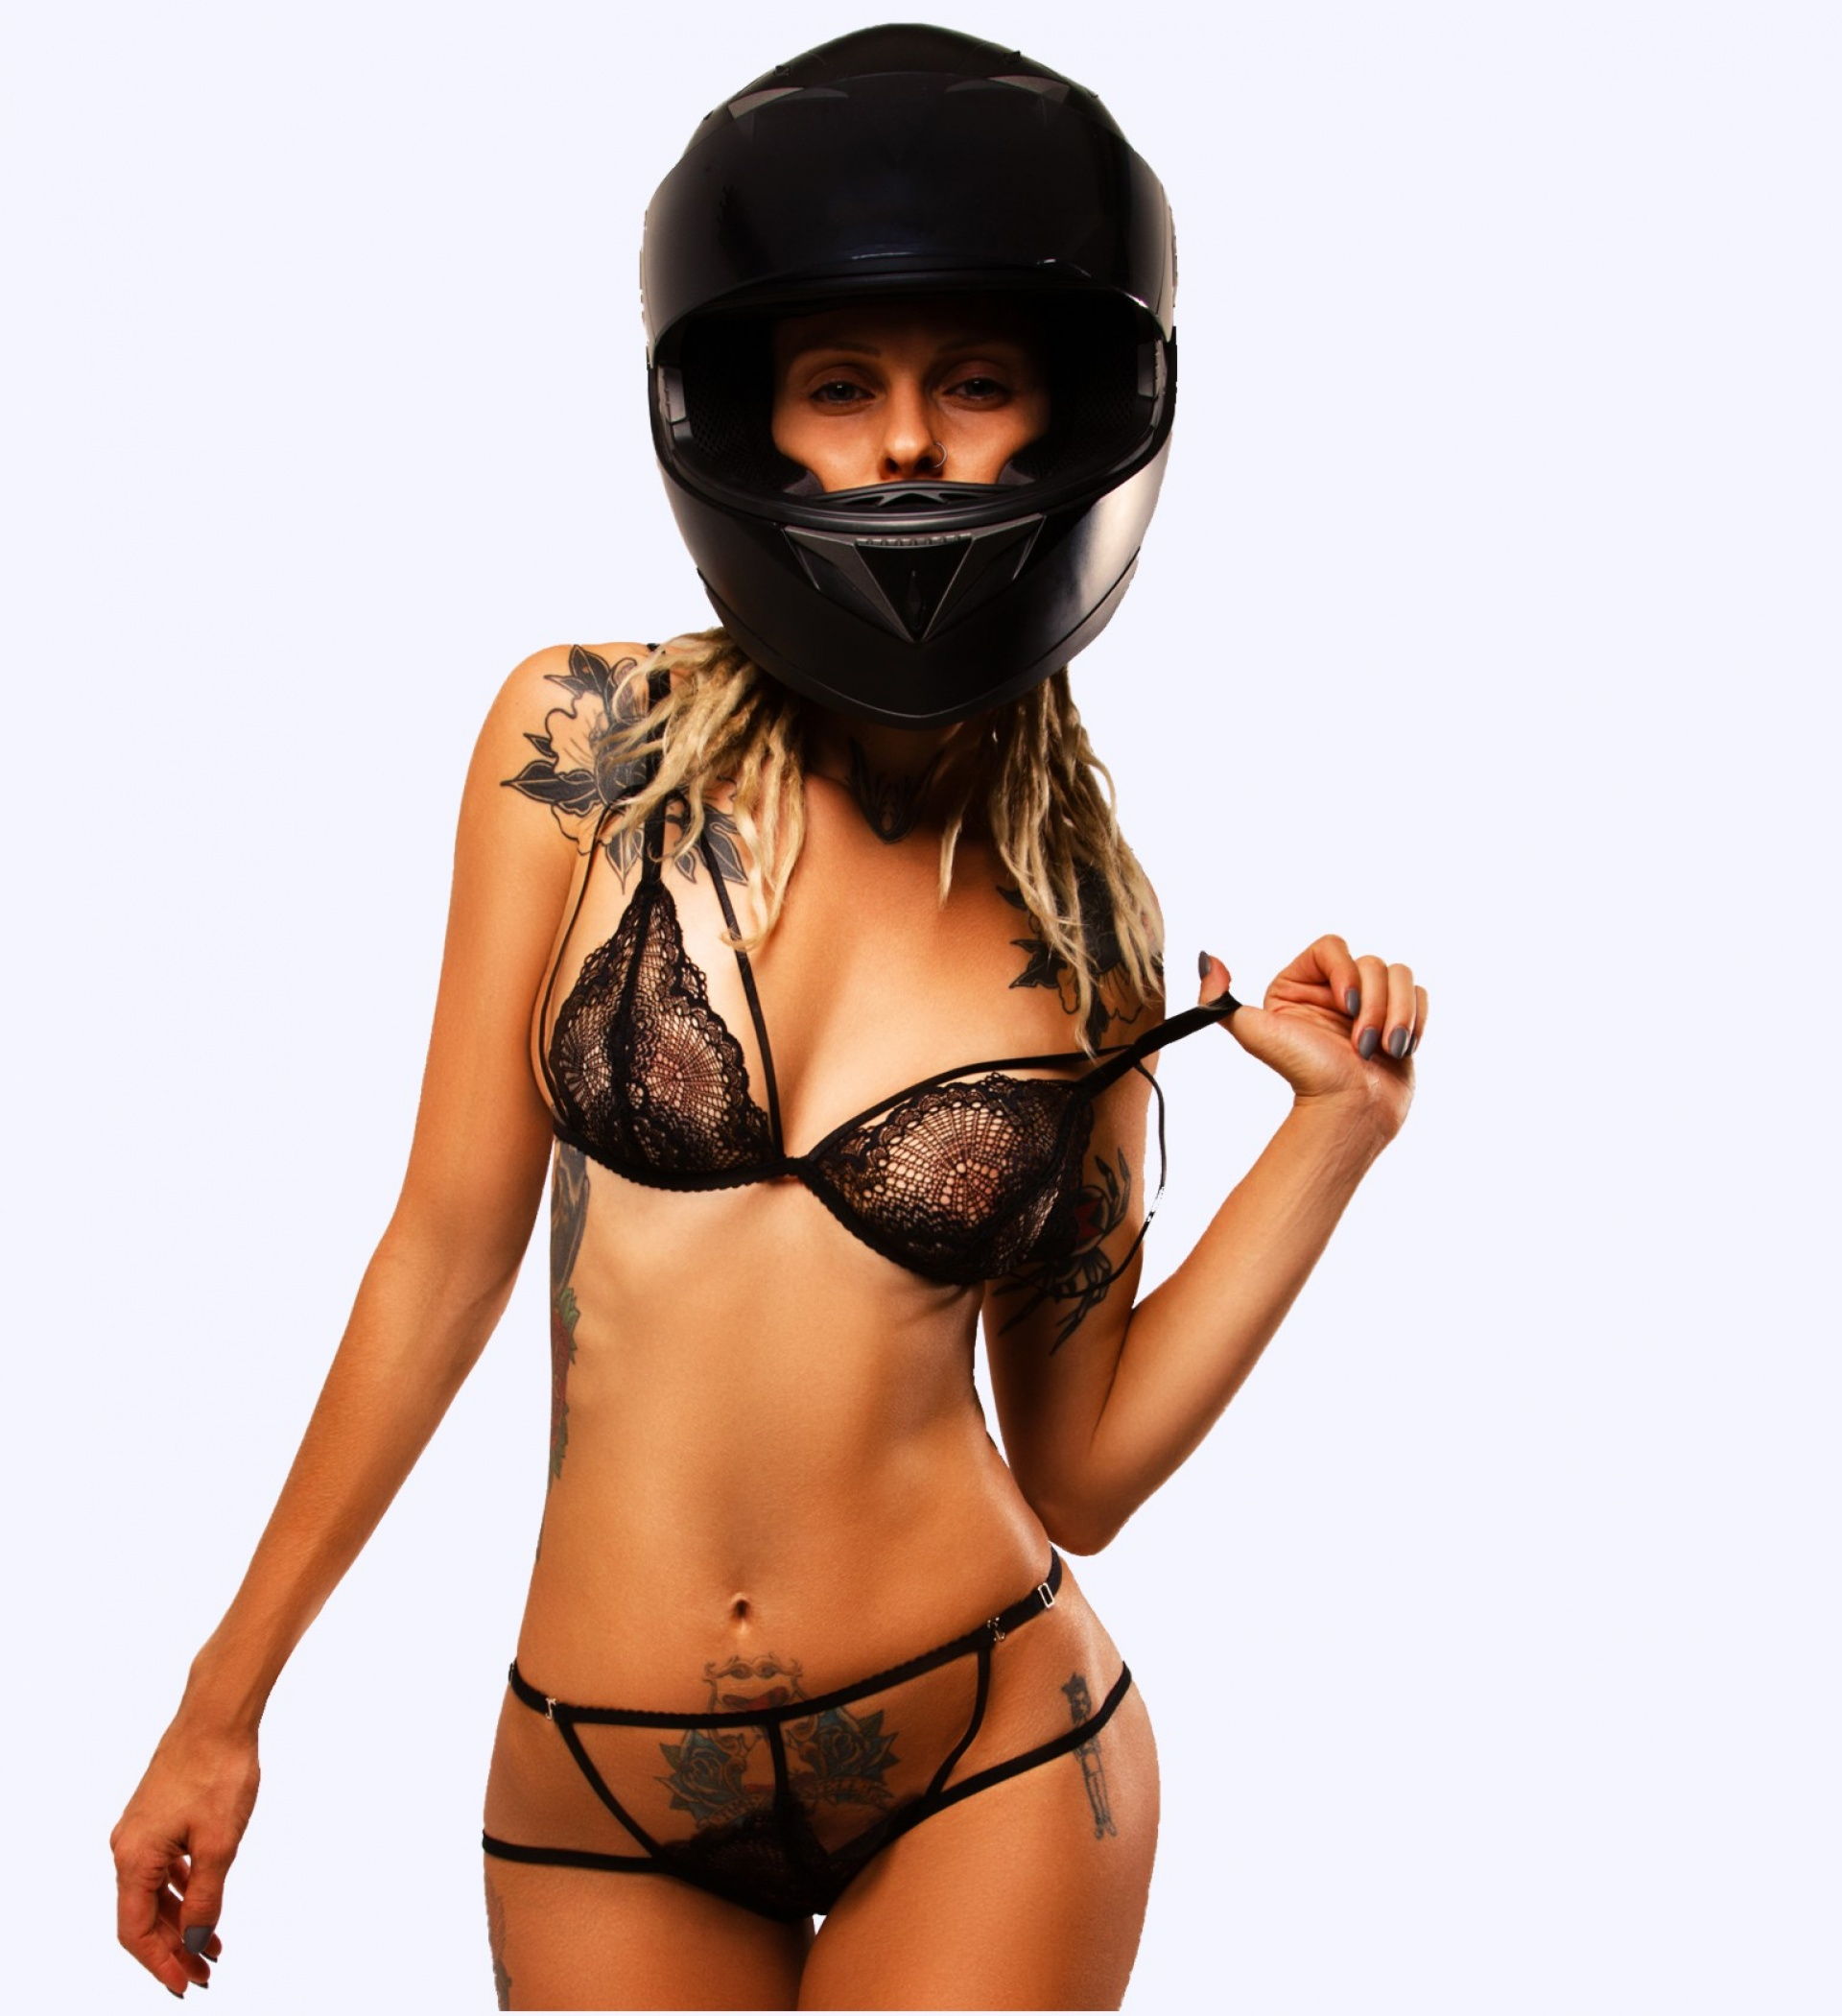 athens sexy racing driver